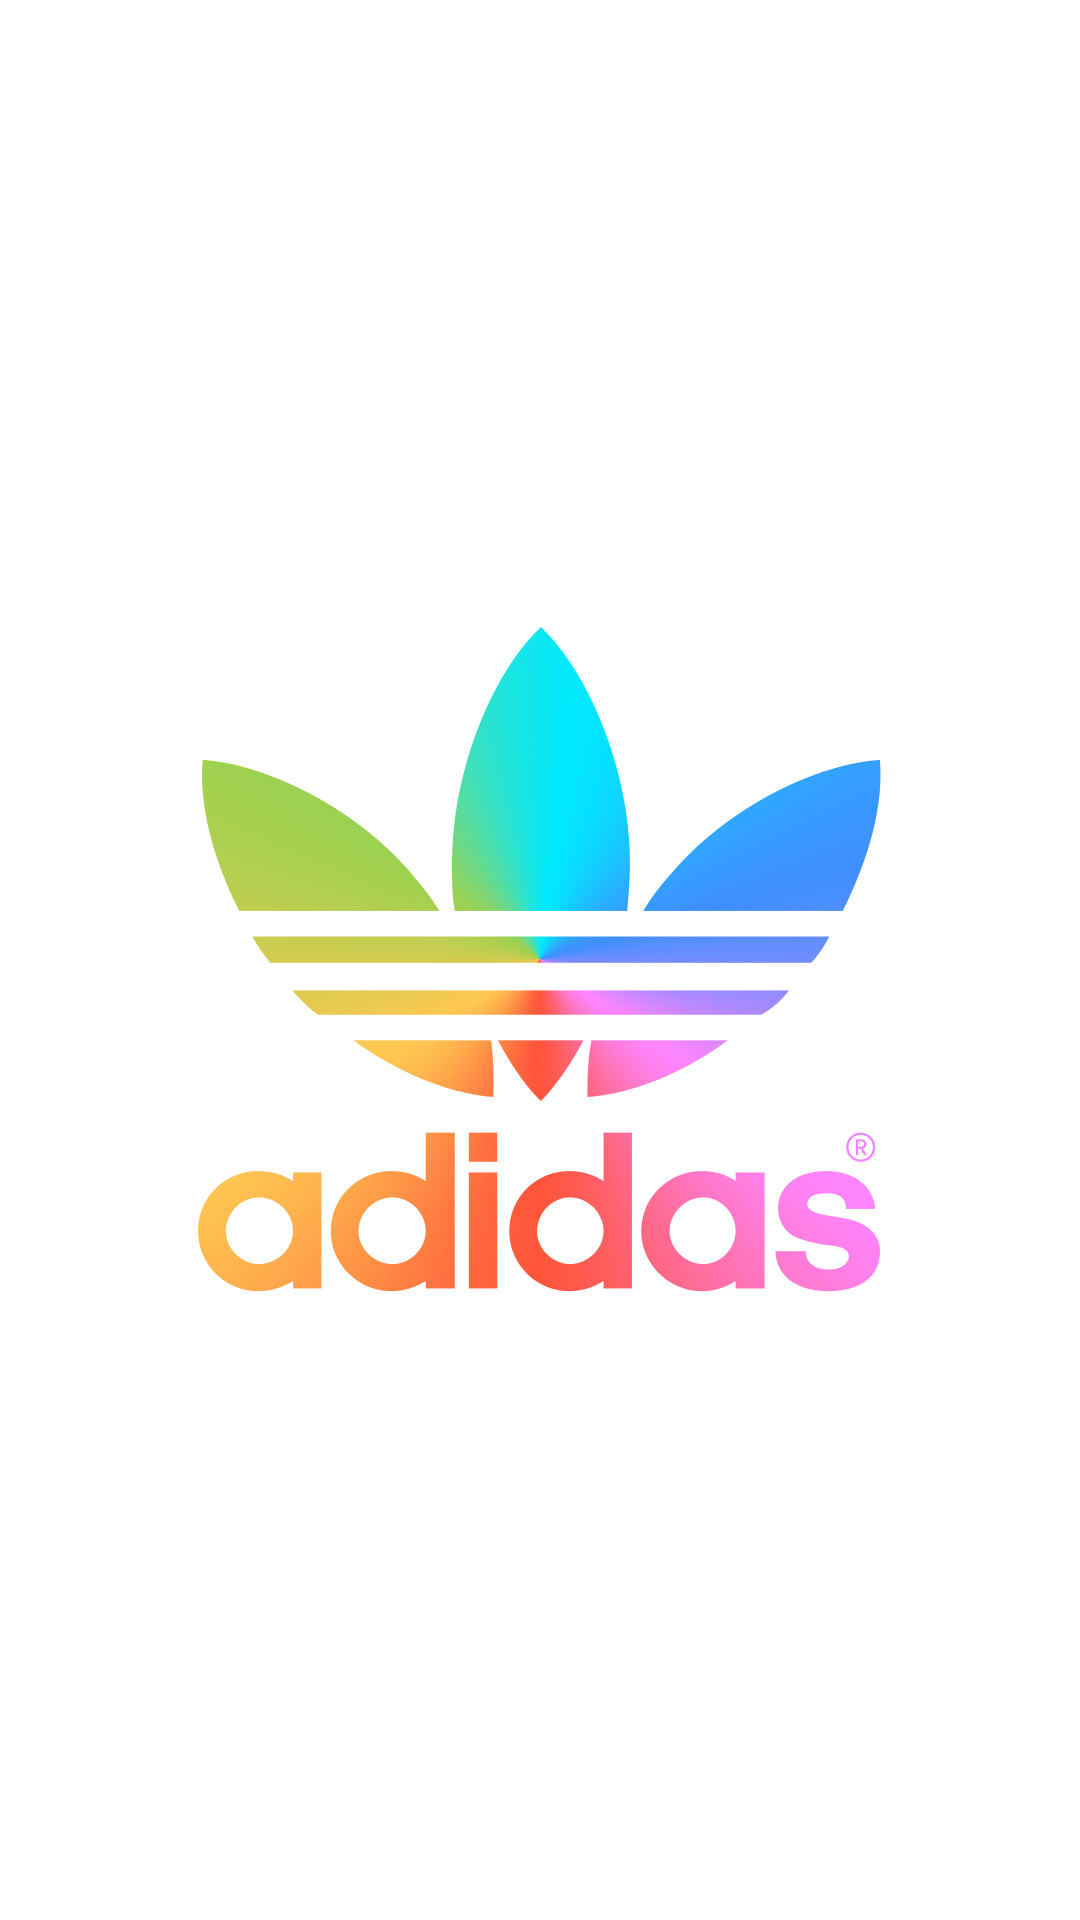 adidas22 - 25 adidas HQ Smartphone Wallpaper Collection